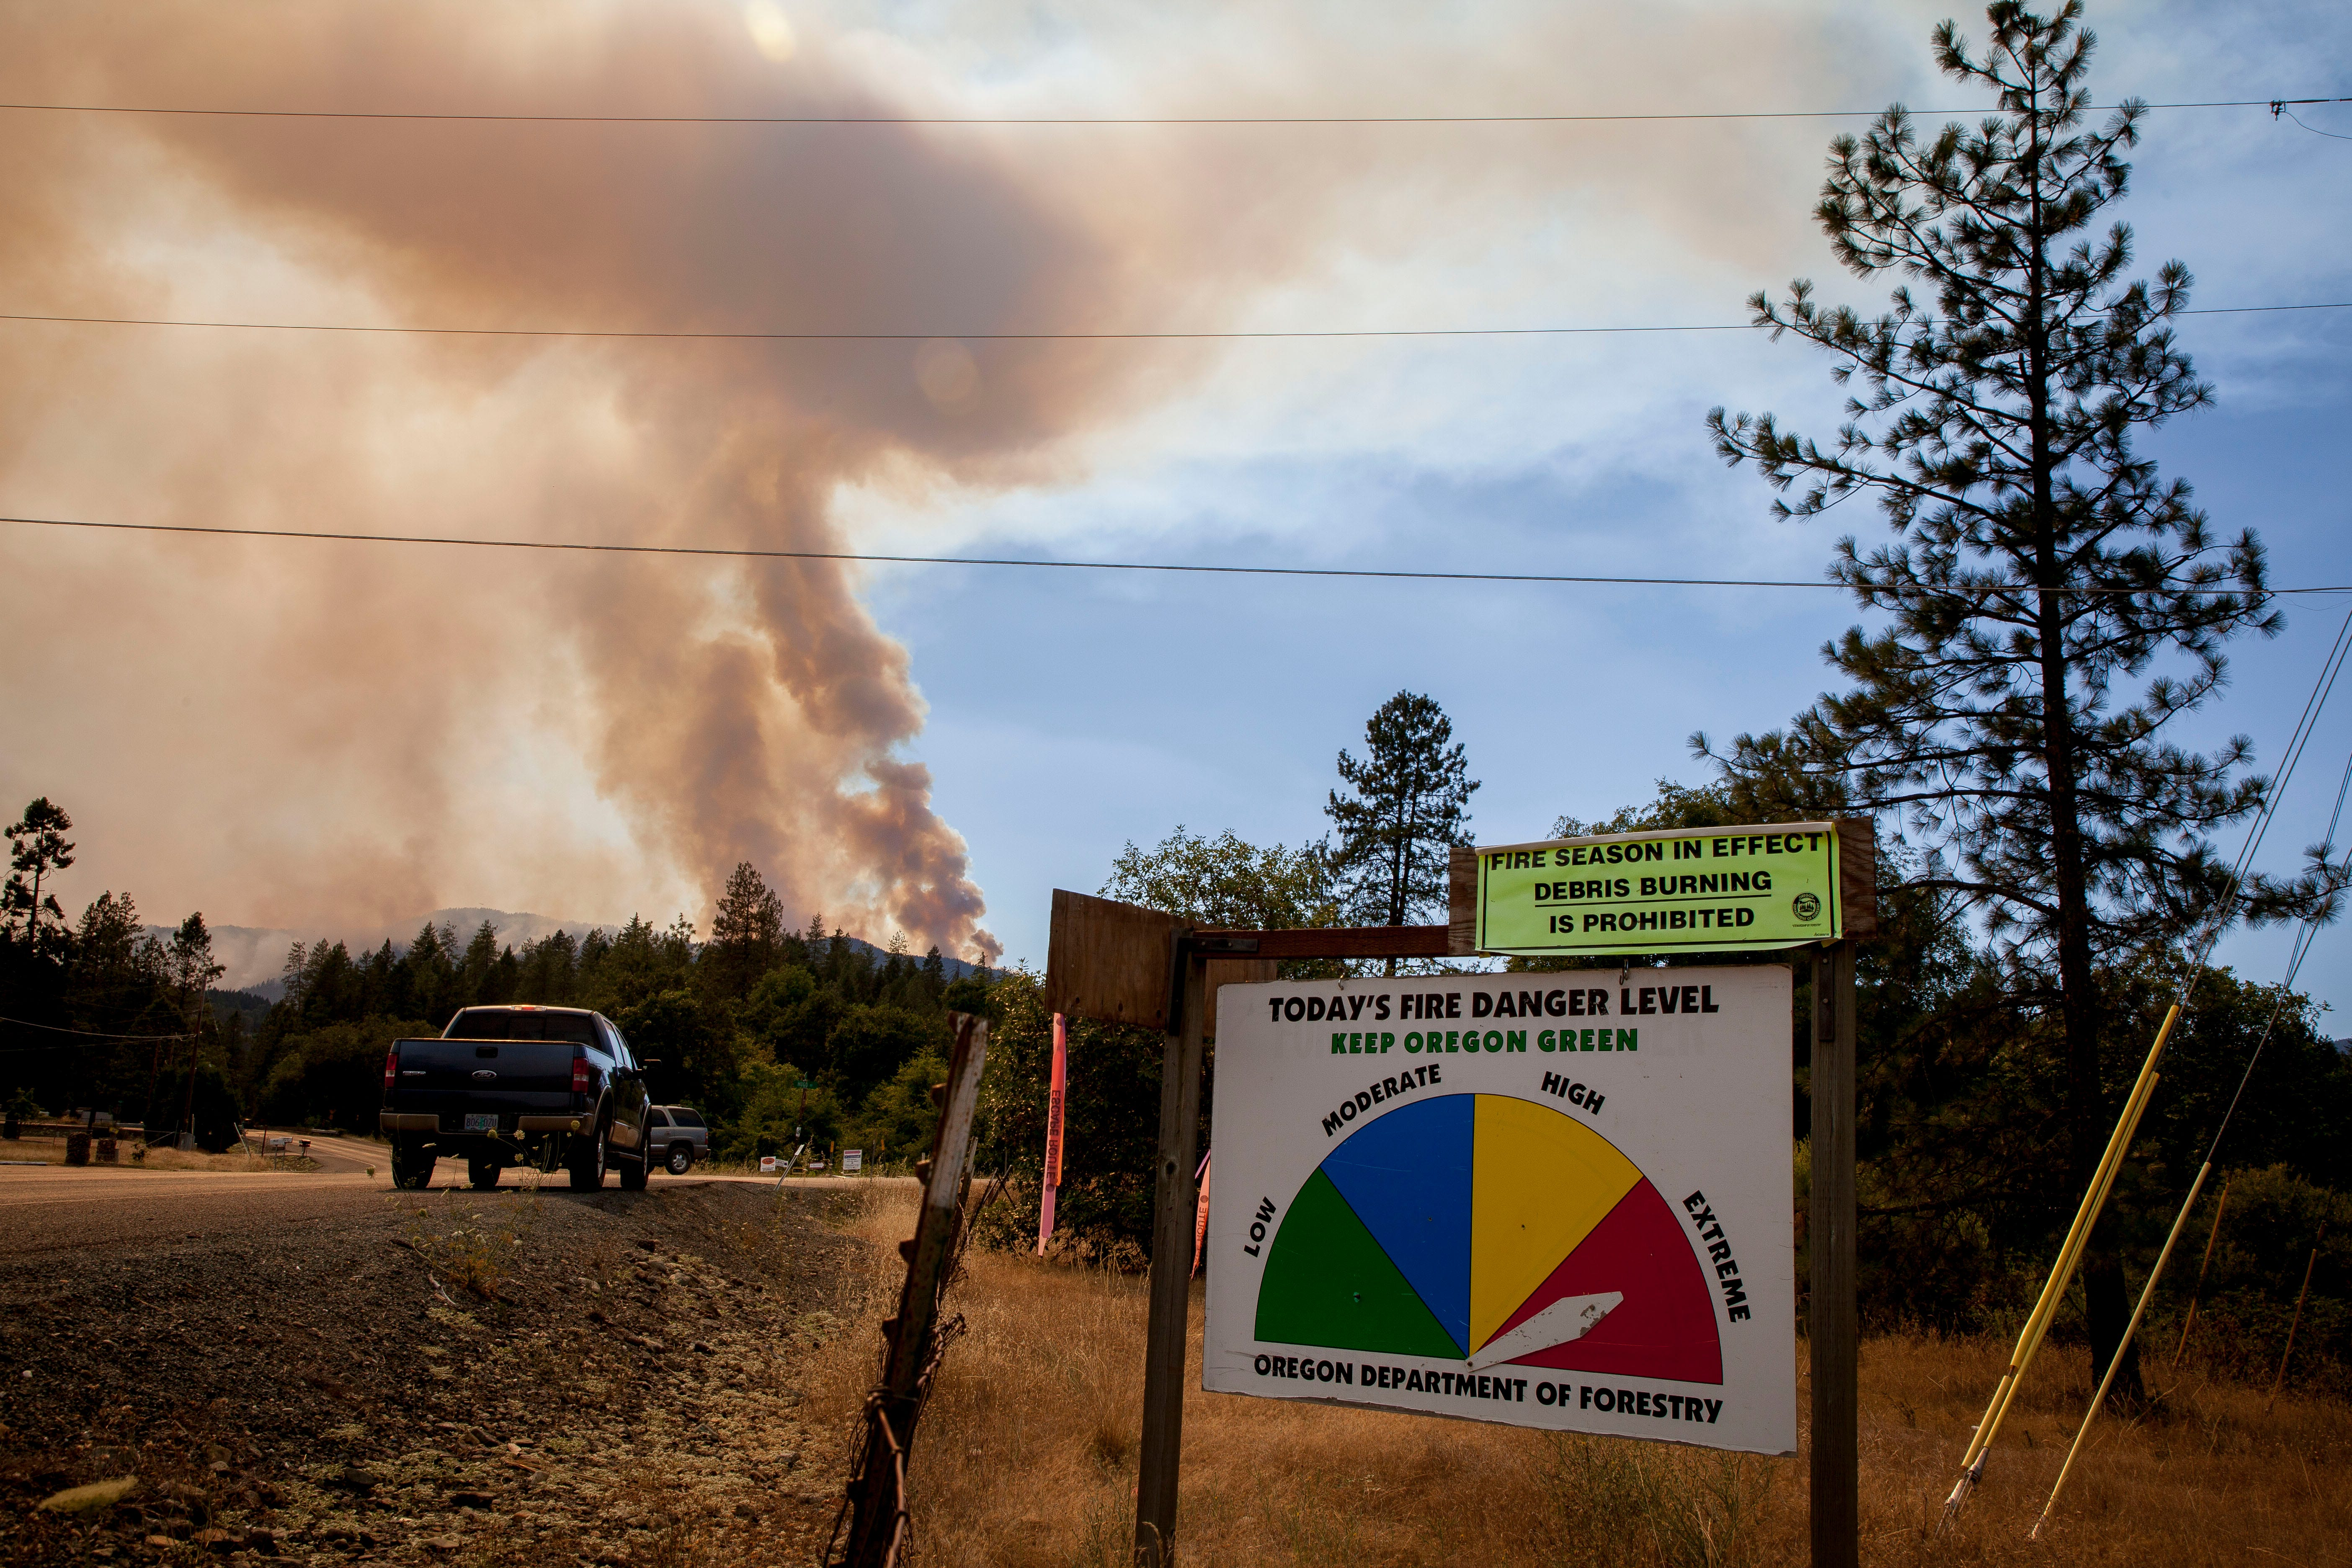 A fire level danger sign shows extreme fire danger along Galice Road just west of Merlin in southern Oregon as smoke rises from Taylor Creek wildfire in the Siskiyou National Forest near the Rogue River in July, 2018.  Smoke caused air quality to be compromised.